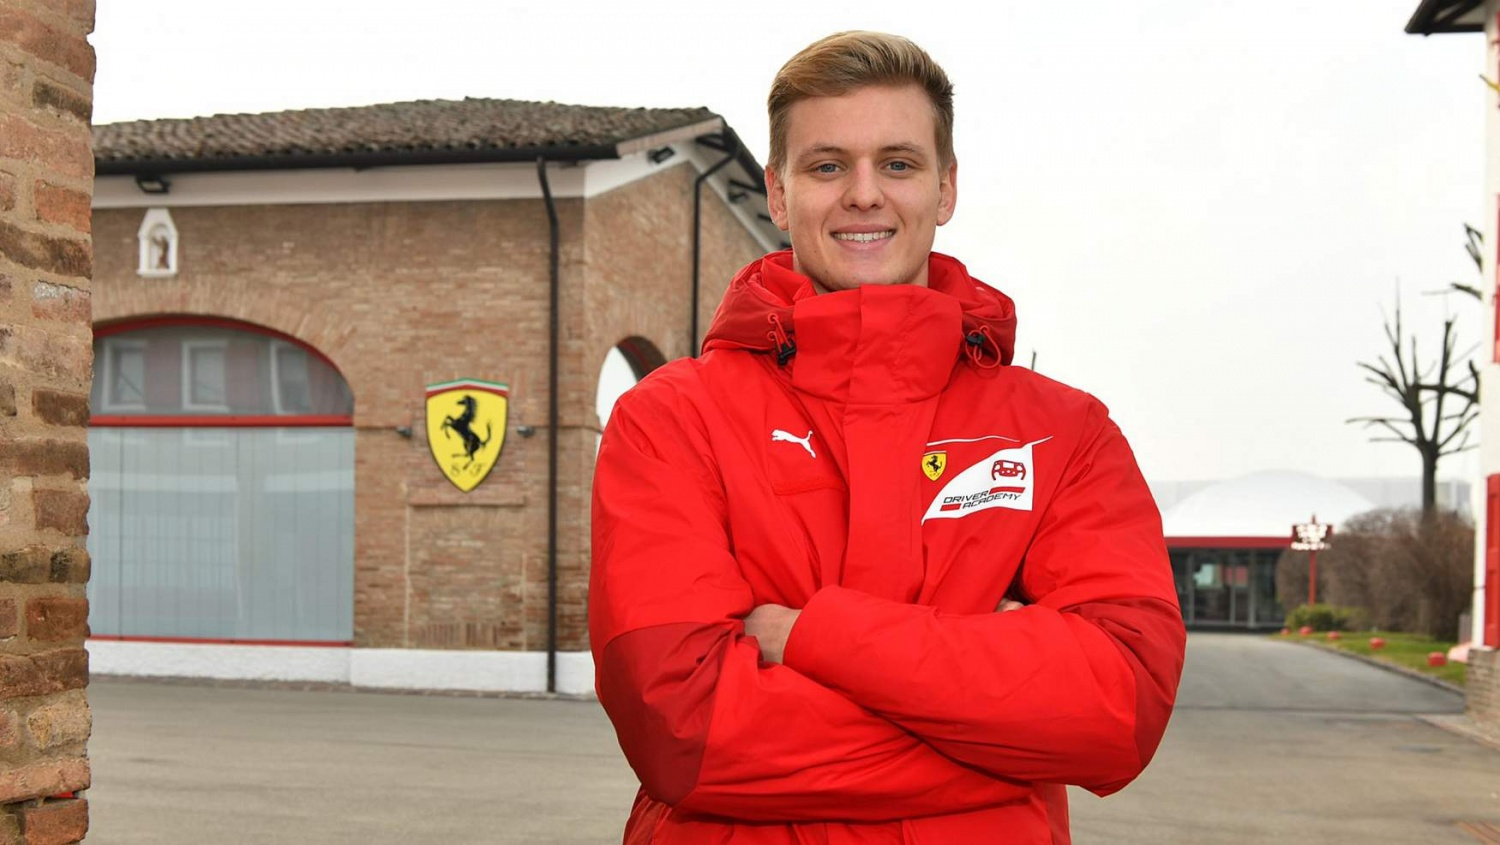 Happy Birthday Mick Schumacher, 21-years-old today